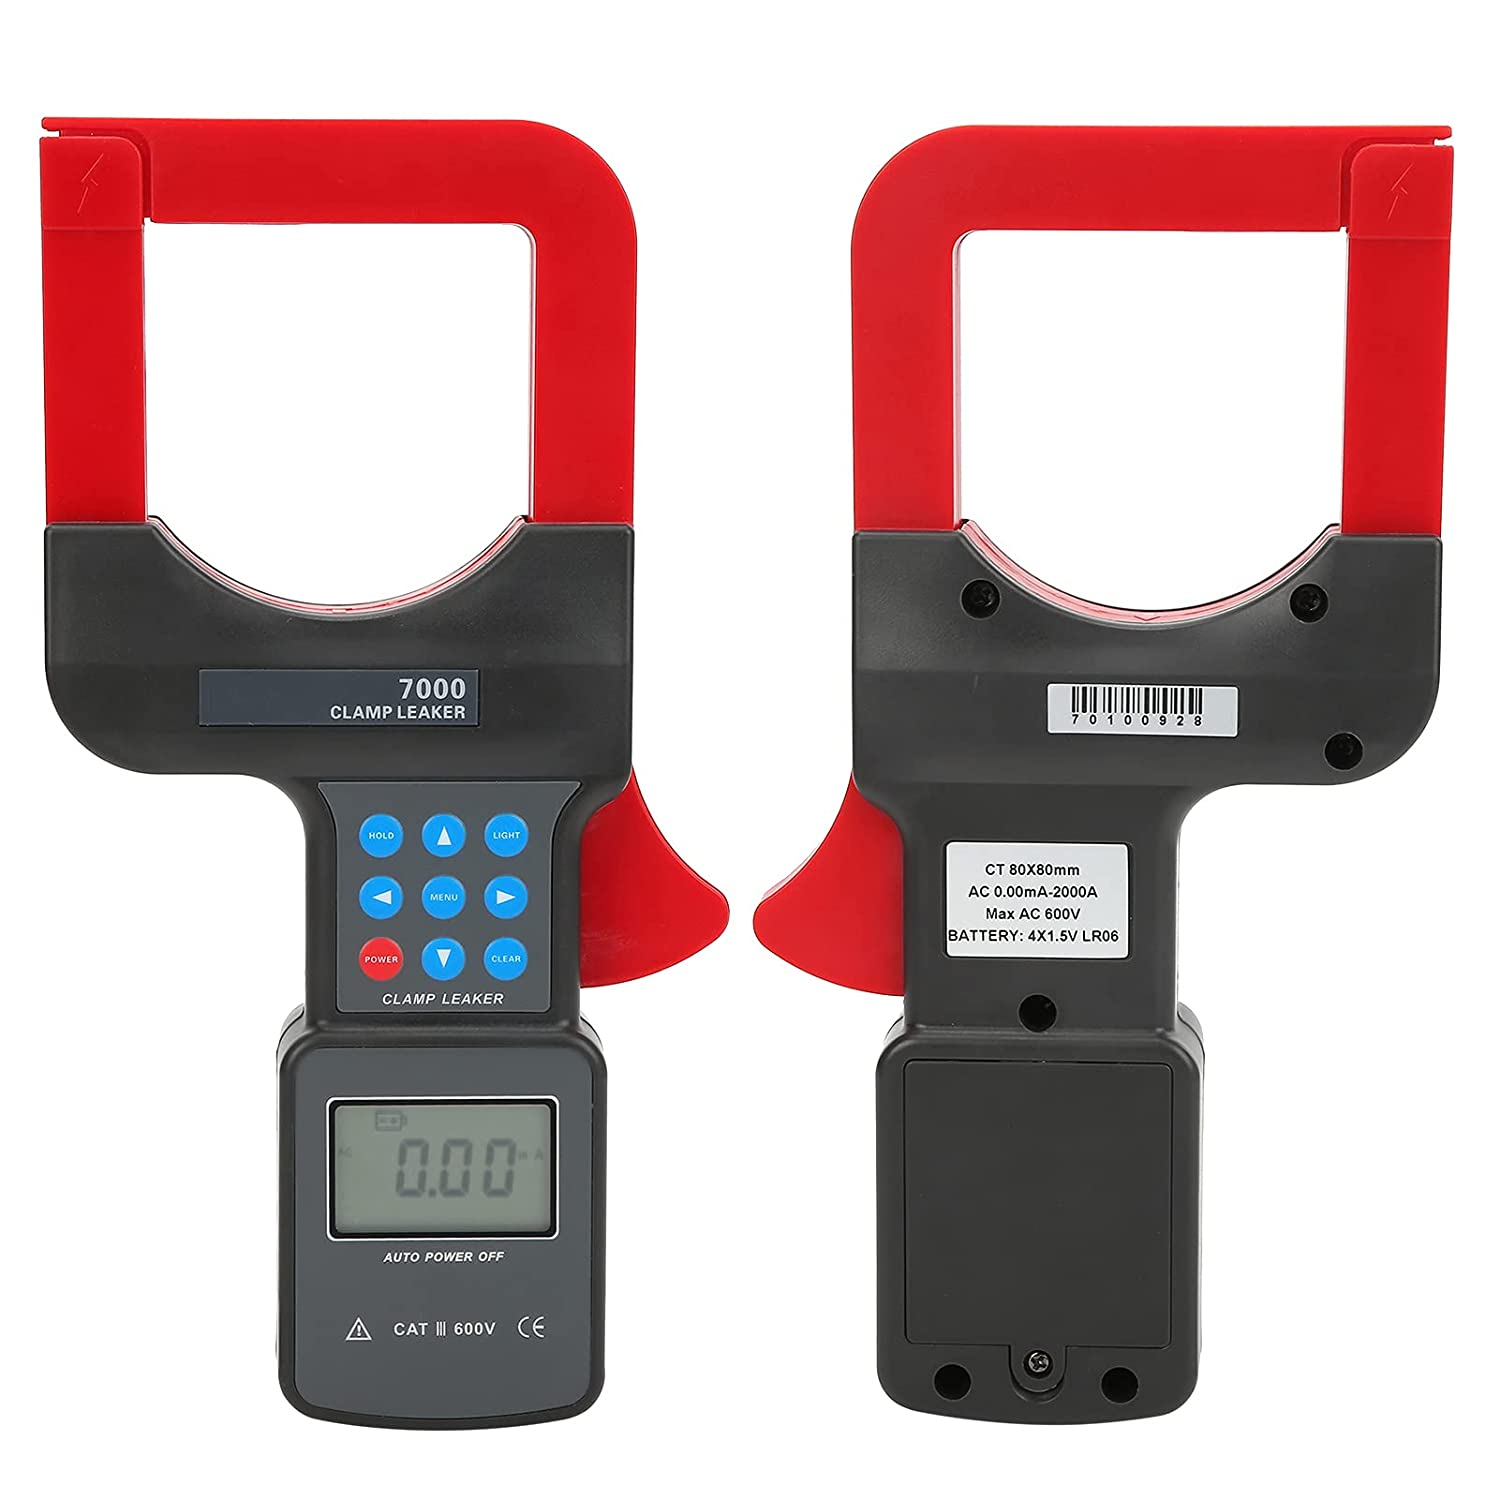 Leakage Clamp Meter Support Max 56% OFF Automatic Cla Charlotte Mall Shifting Gear Digital